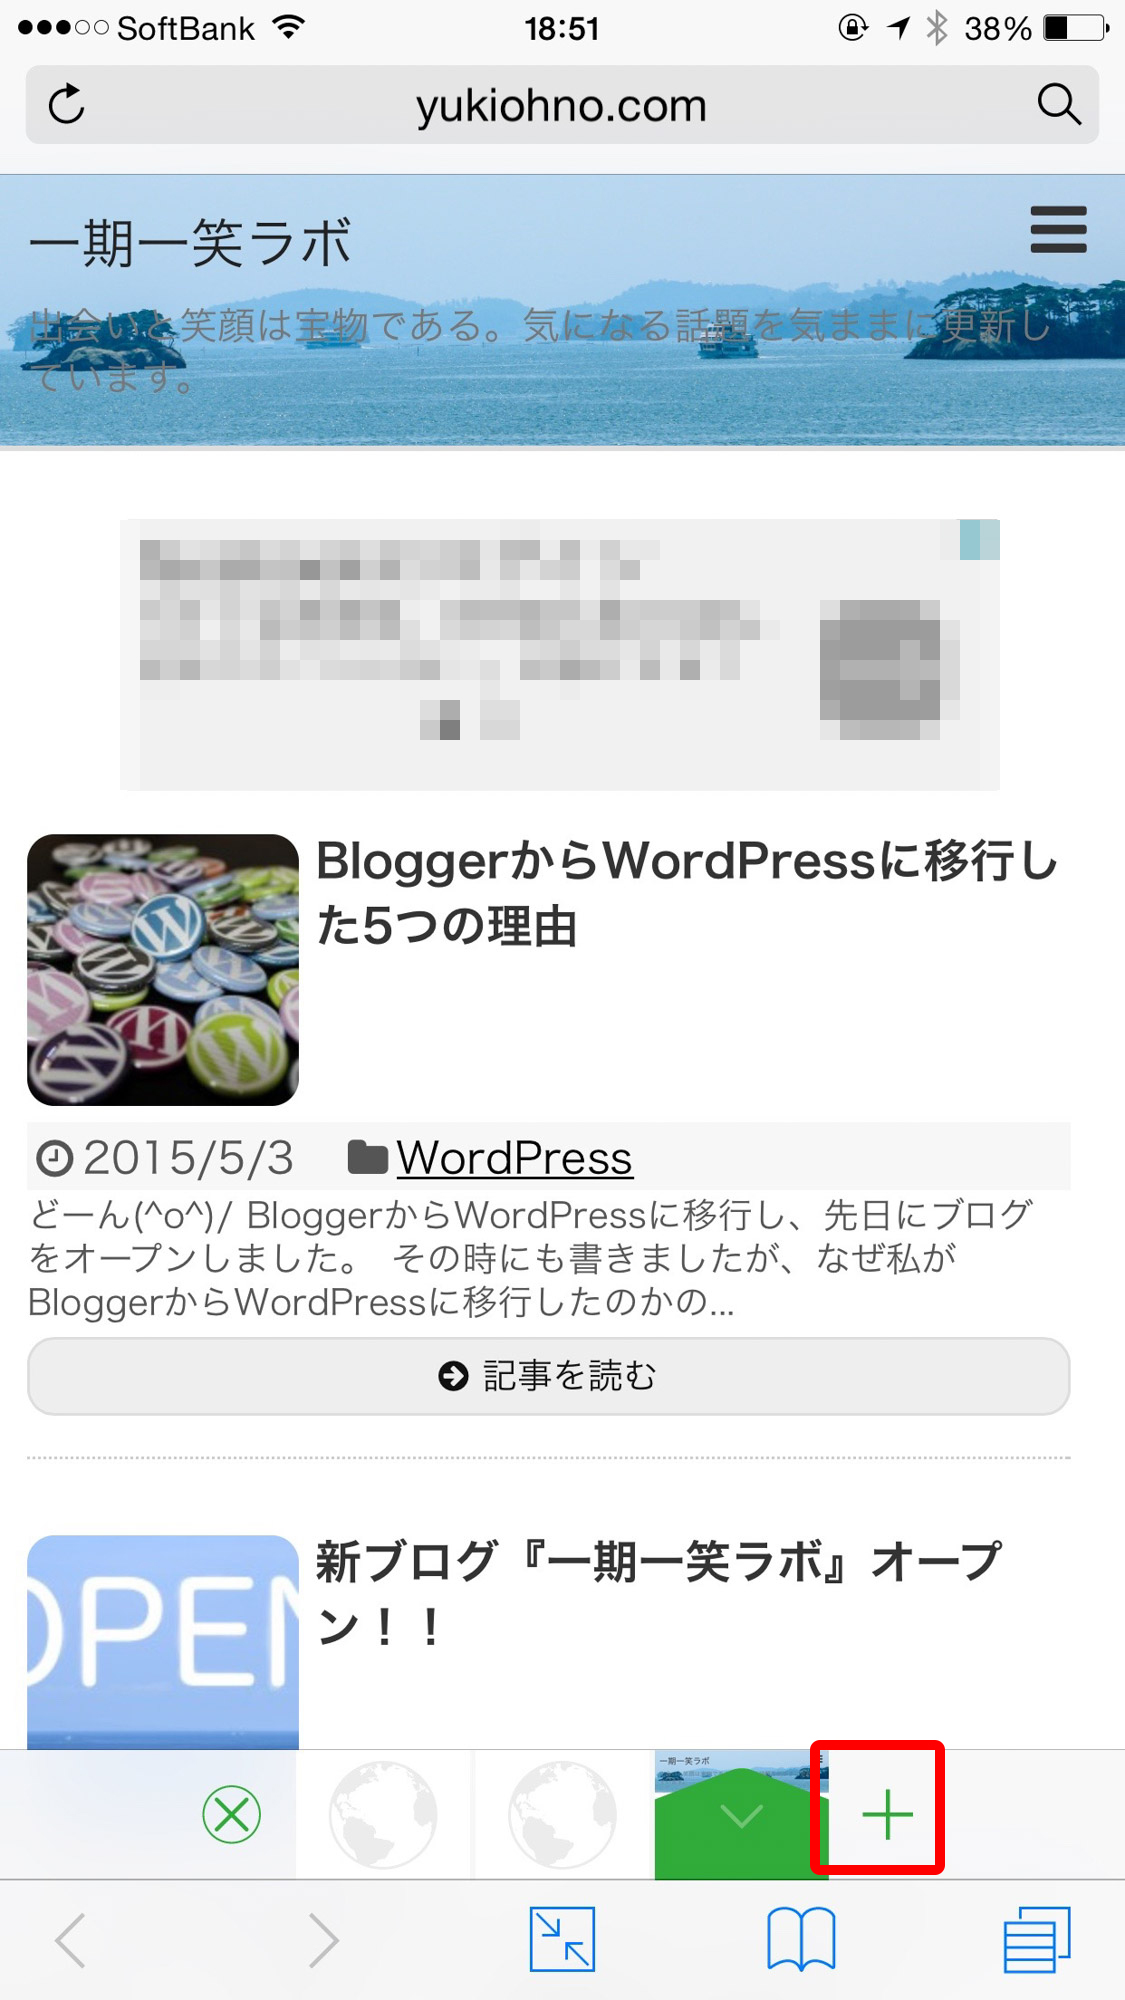 browser-wp-4297